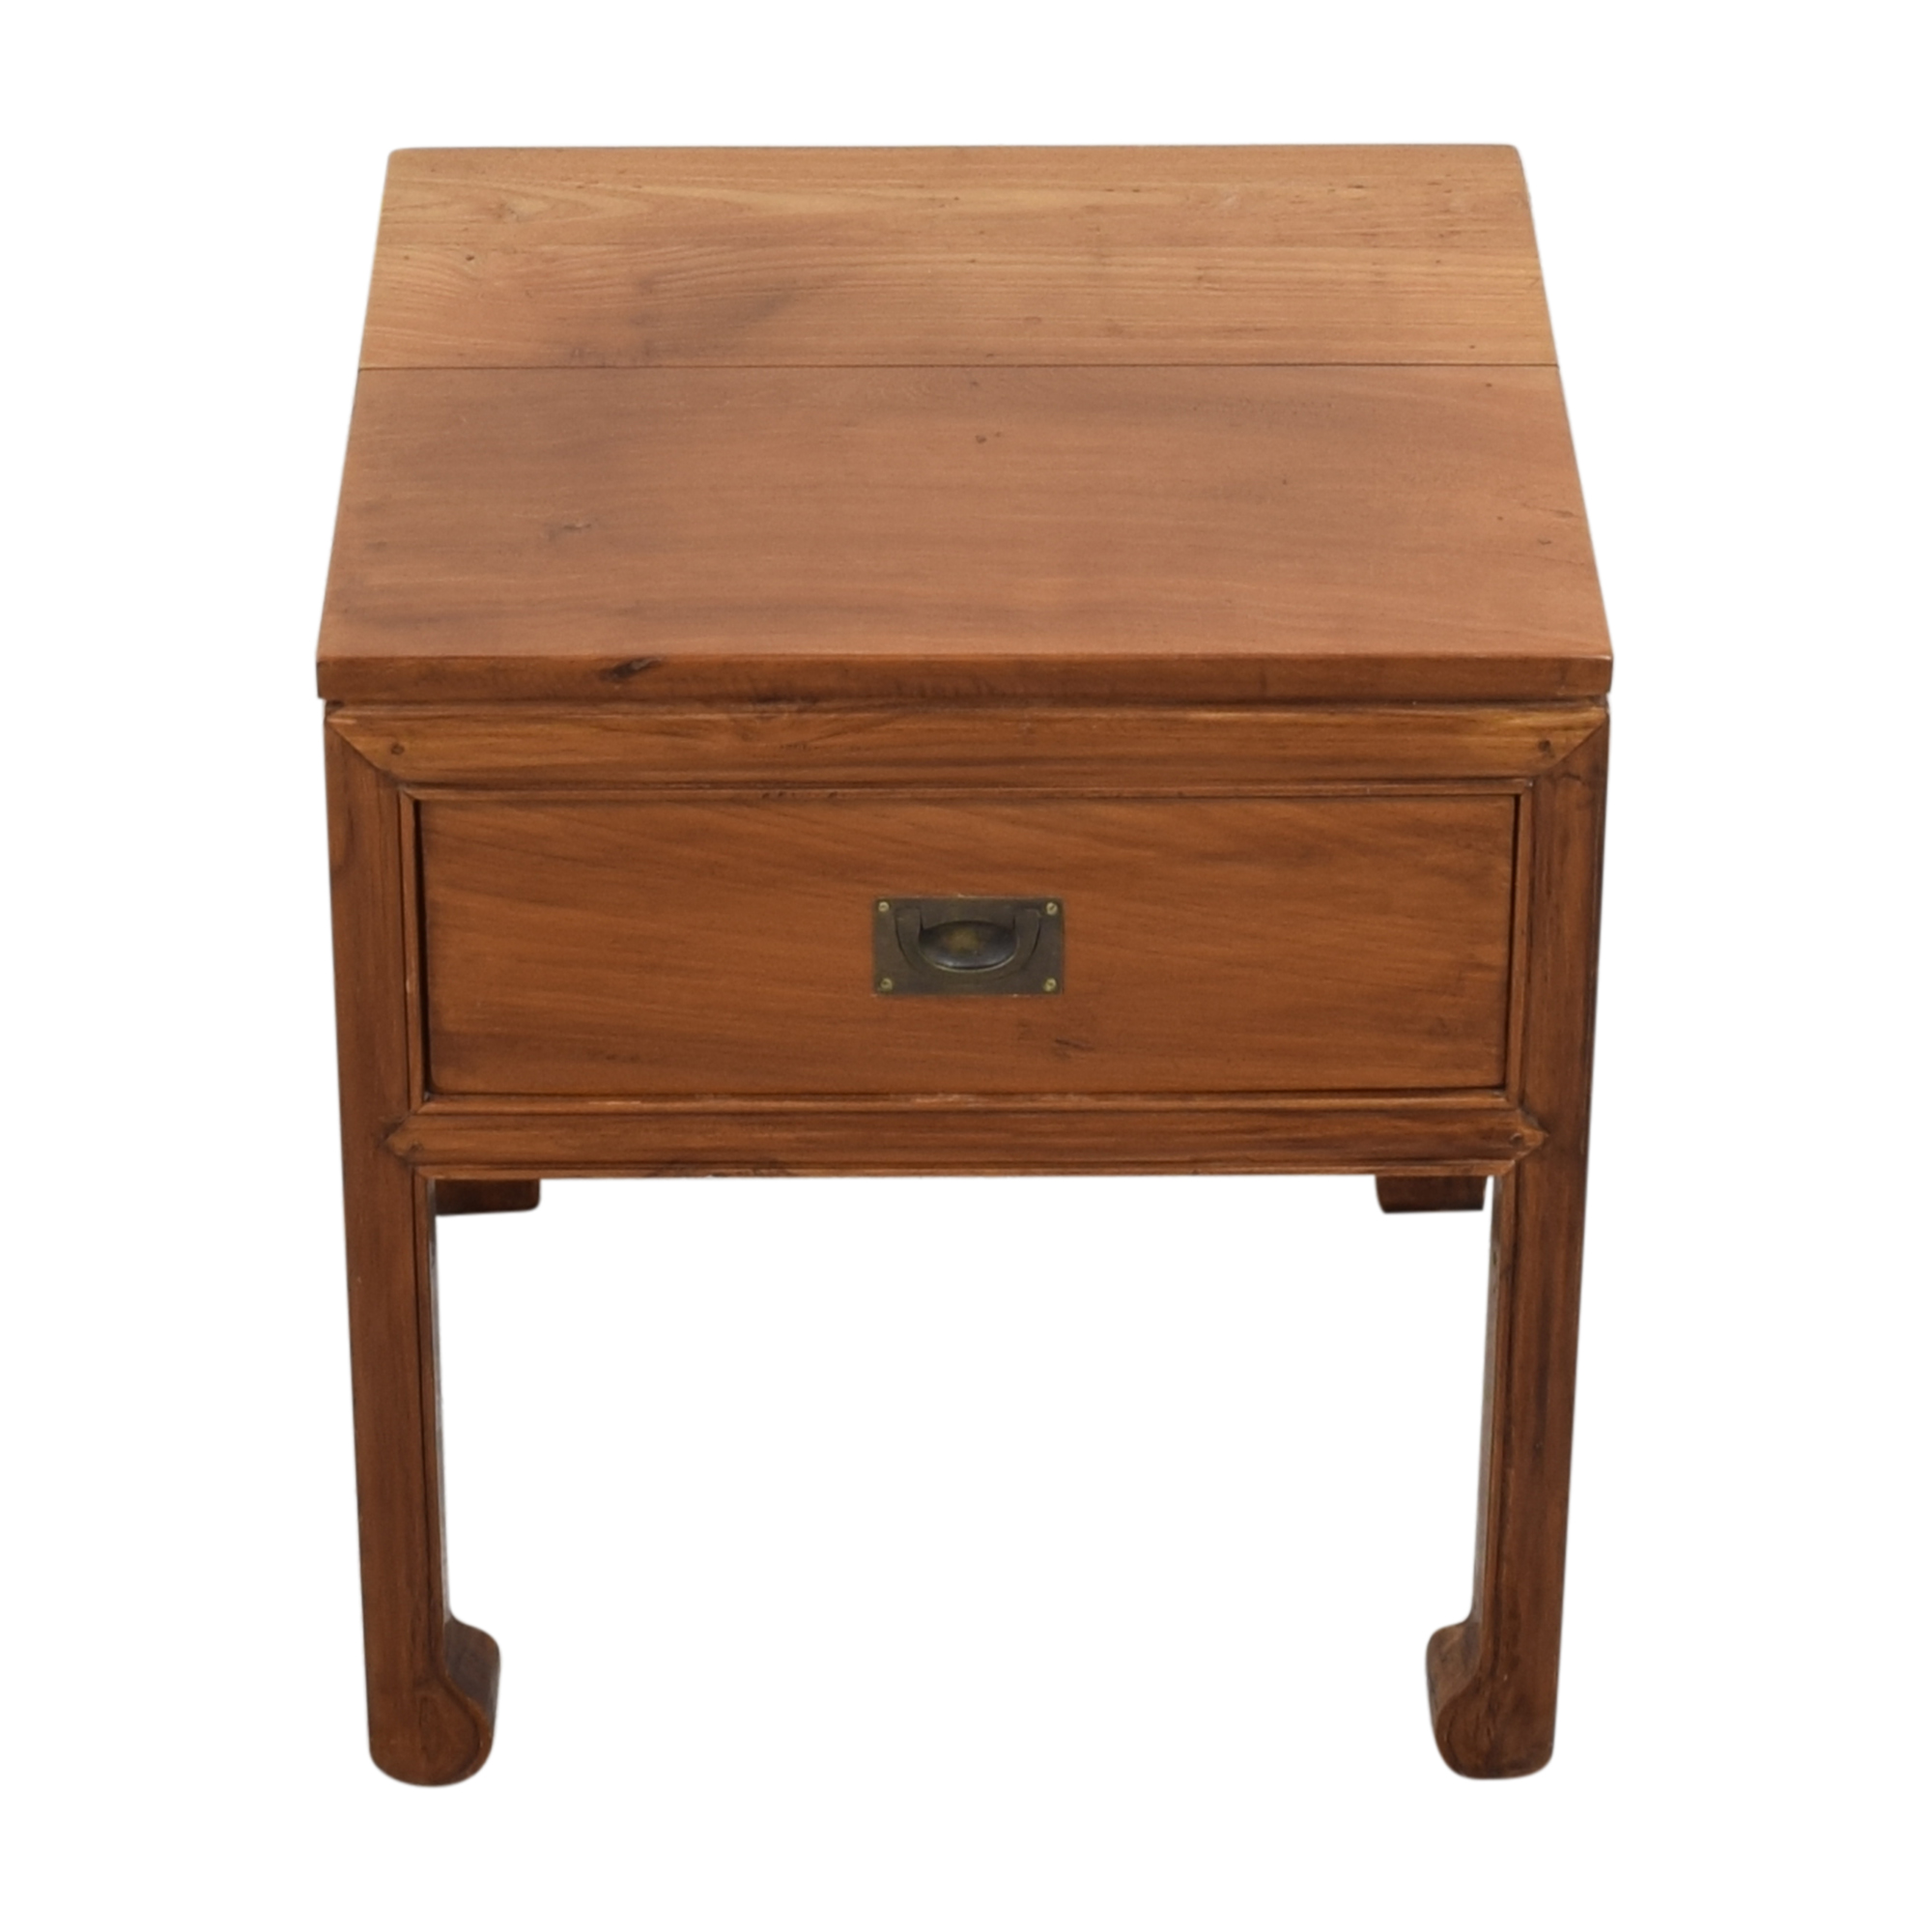 Balinese End Table on sale